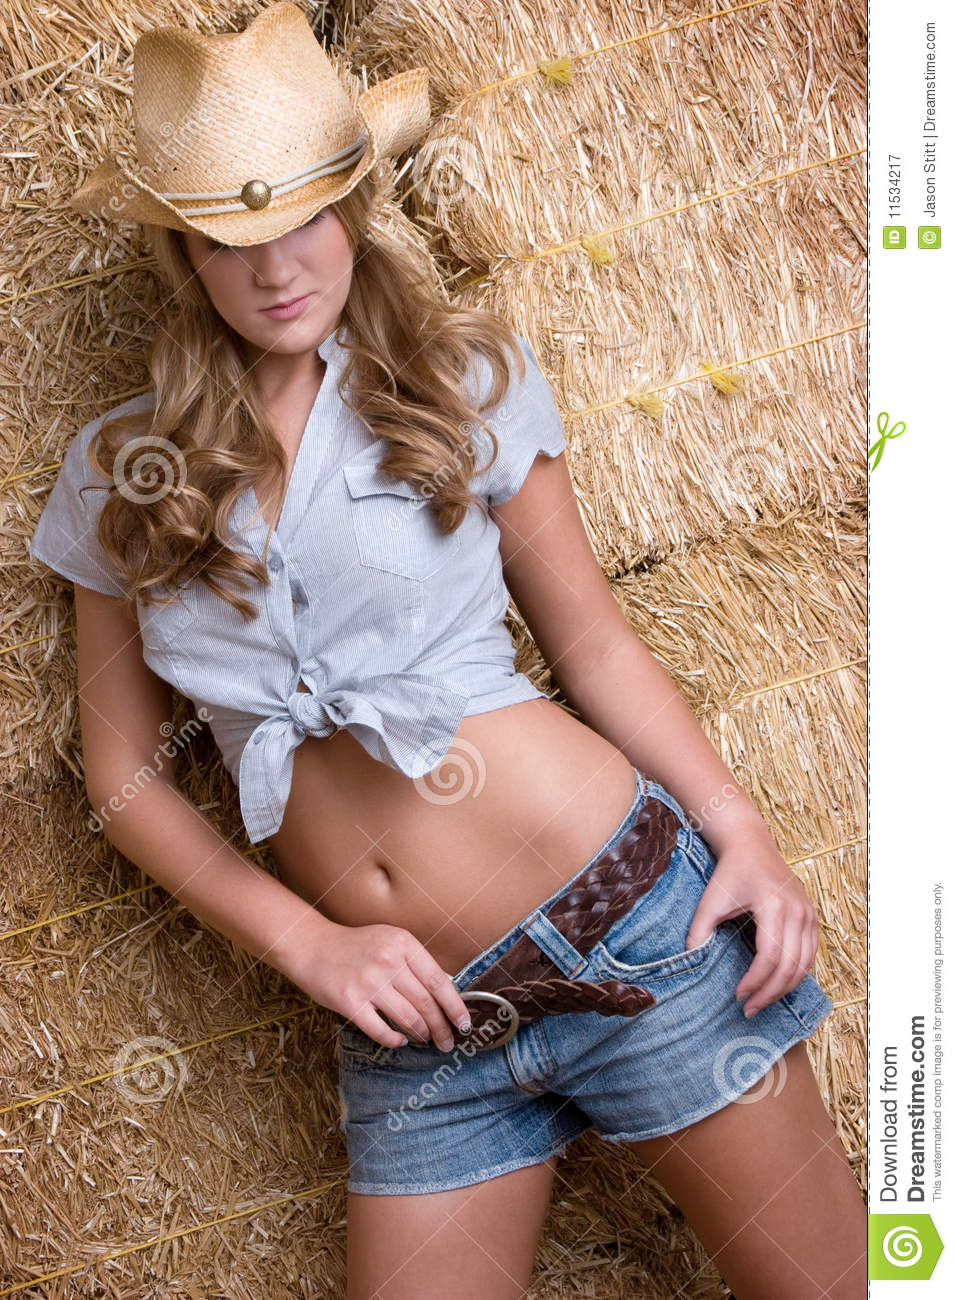 Sexy country woman